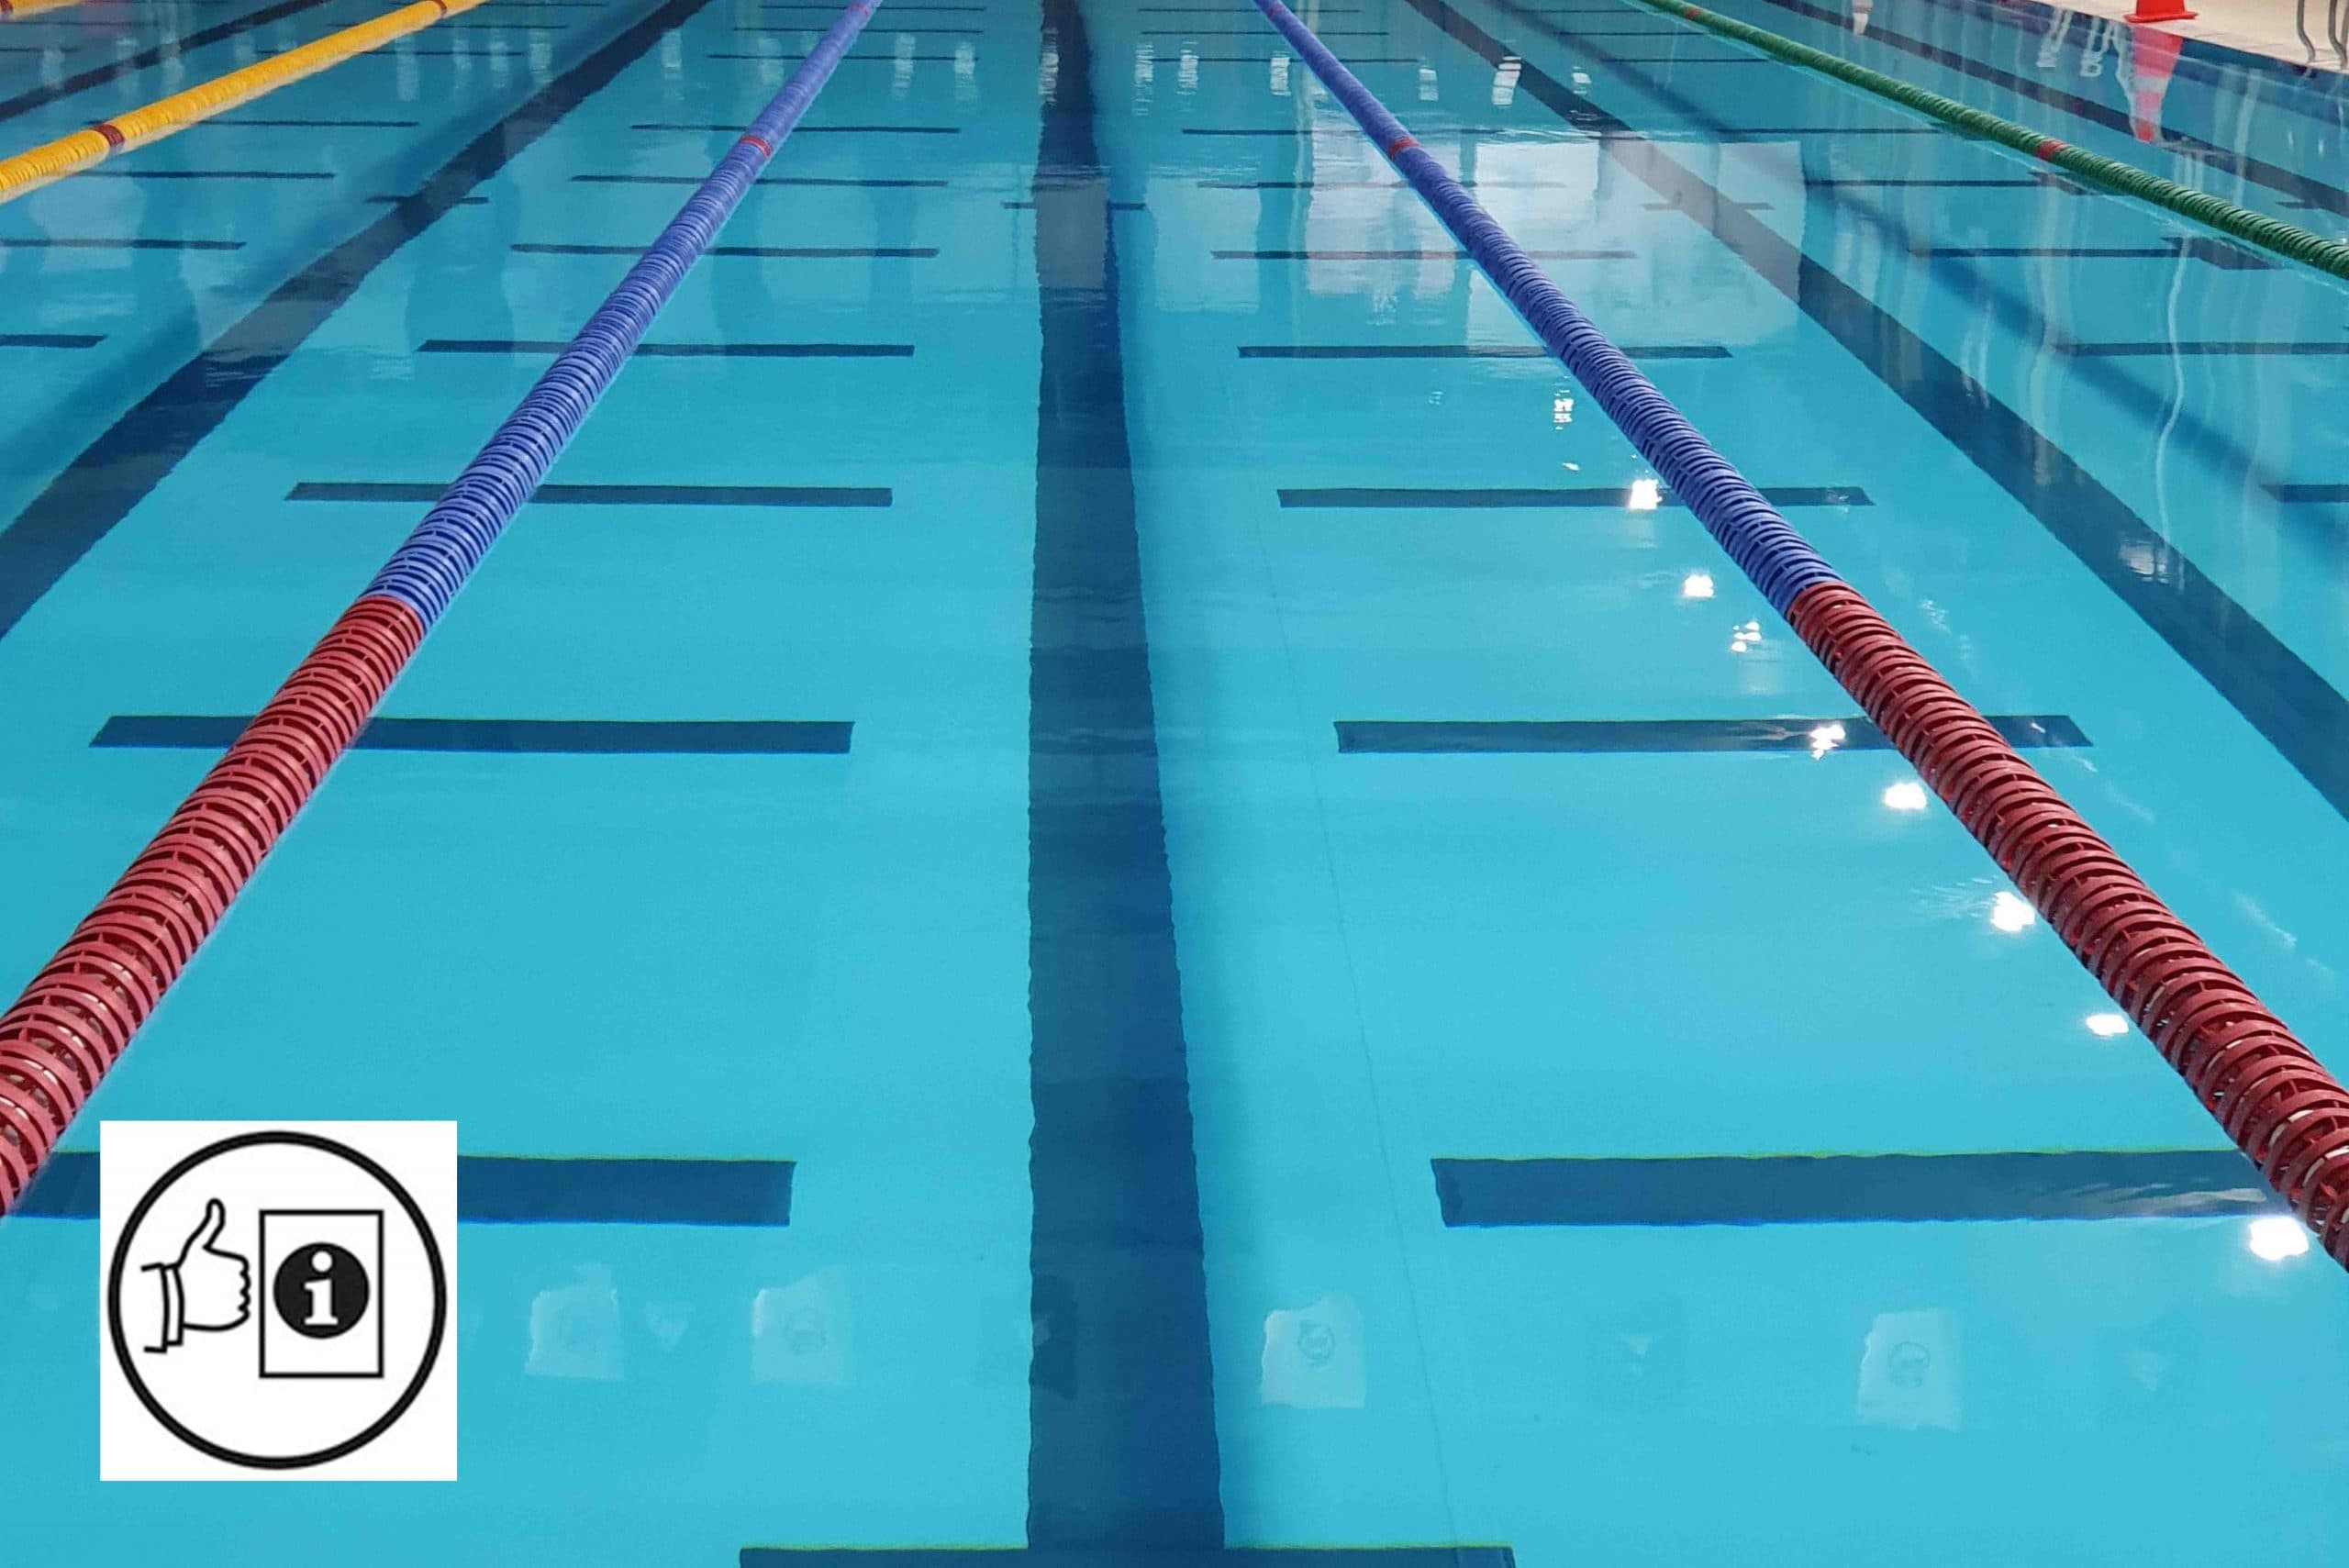 Image of a pool full of water with multiple lane dividers in place. The easy read symbol appears in the bottom left hand corner.